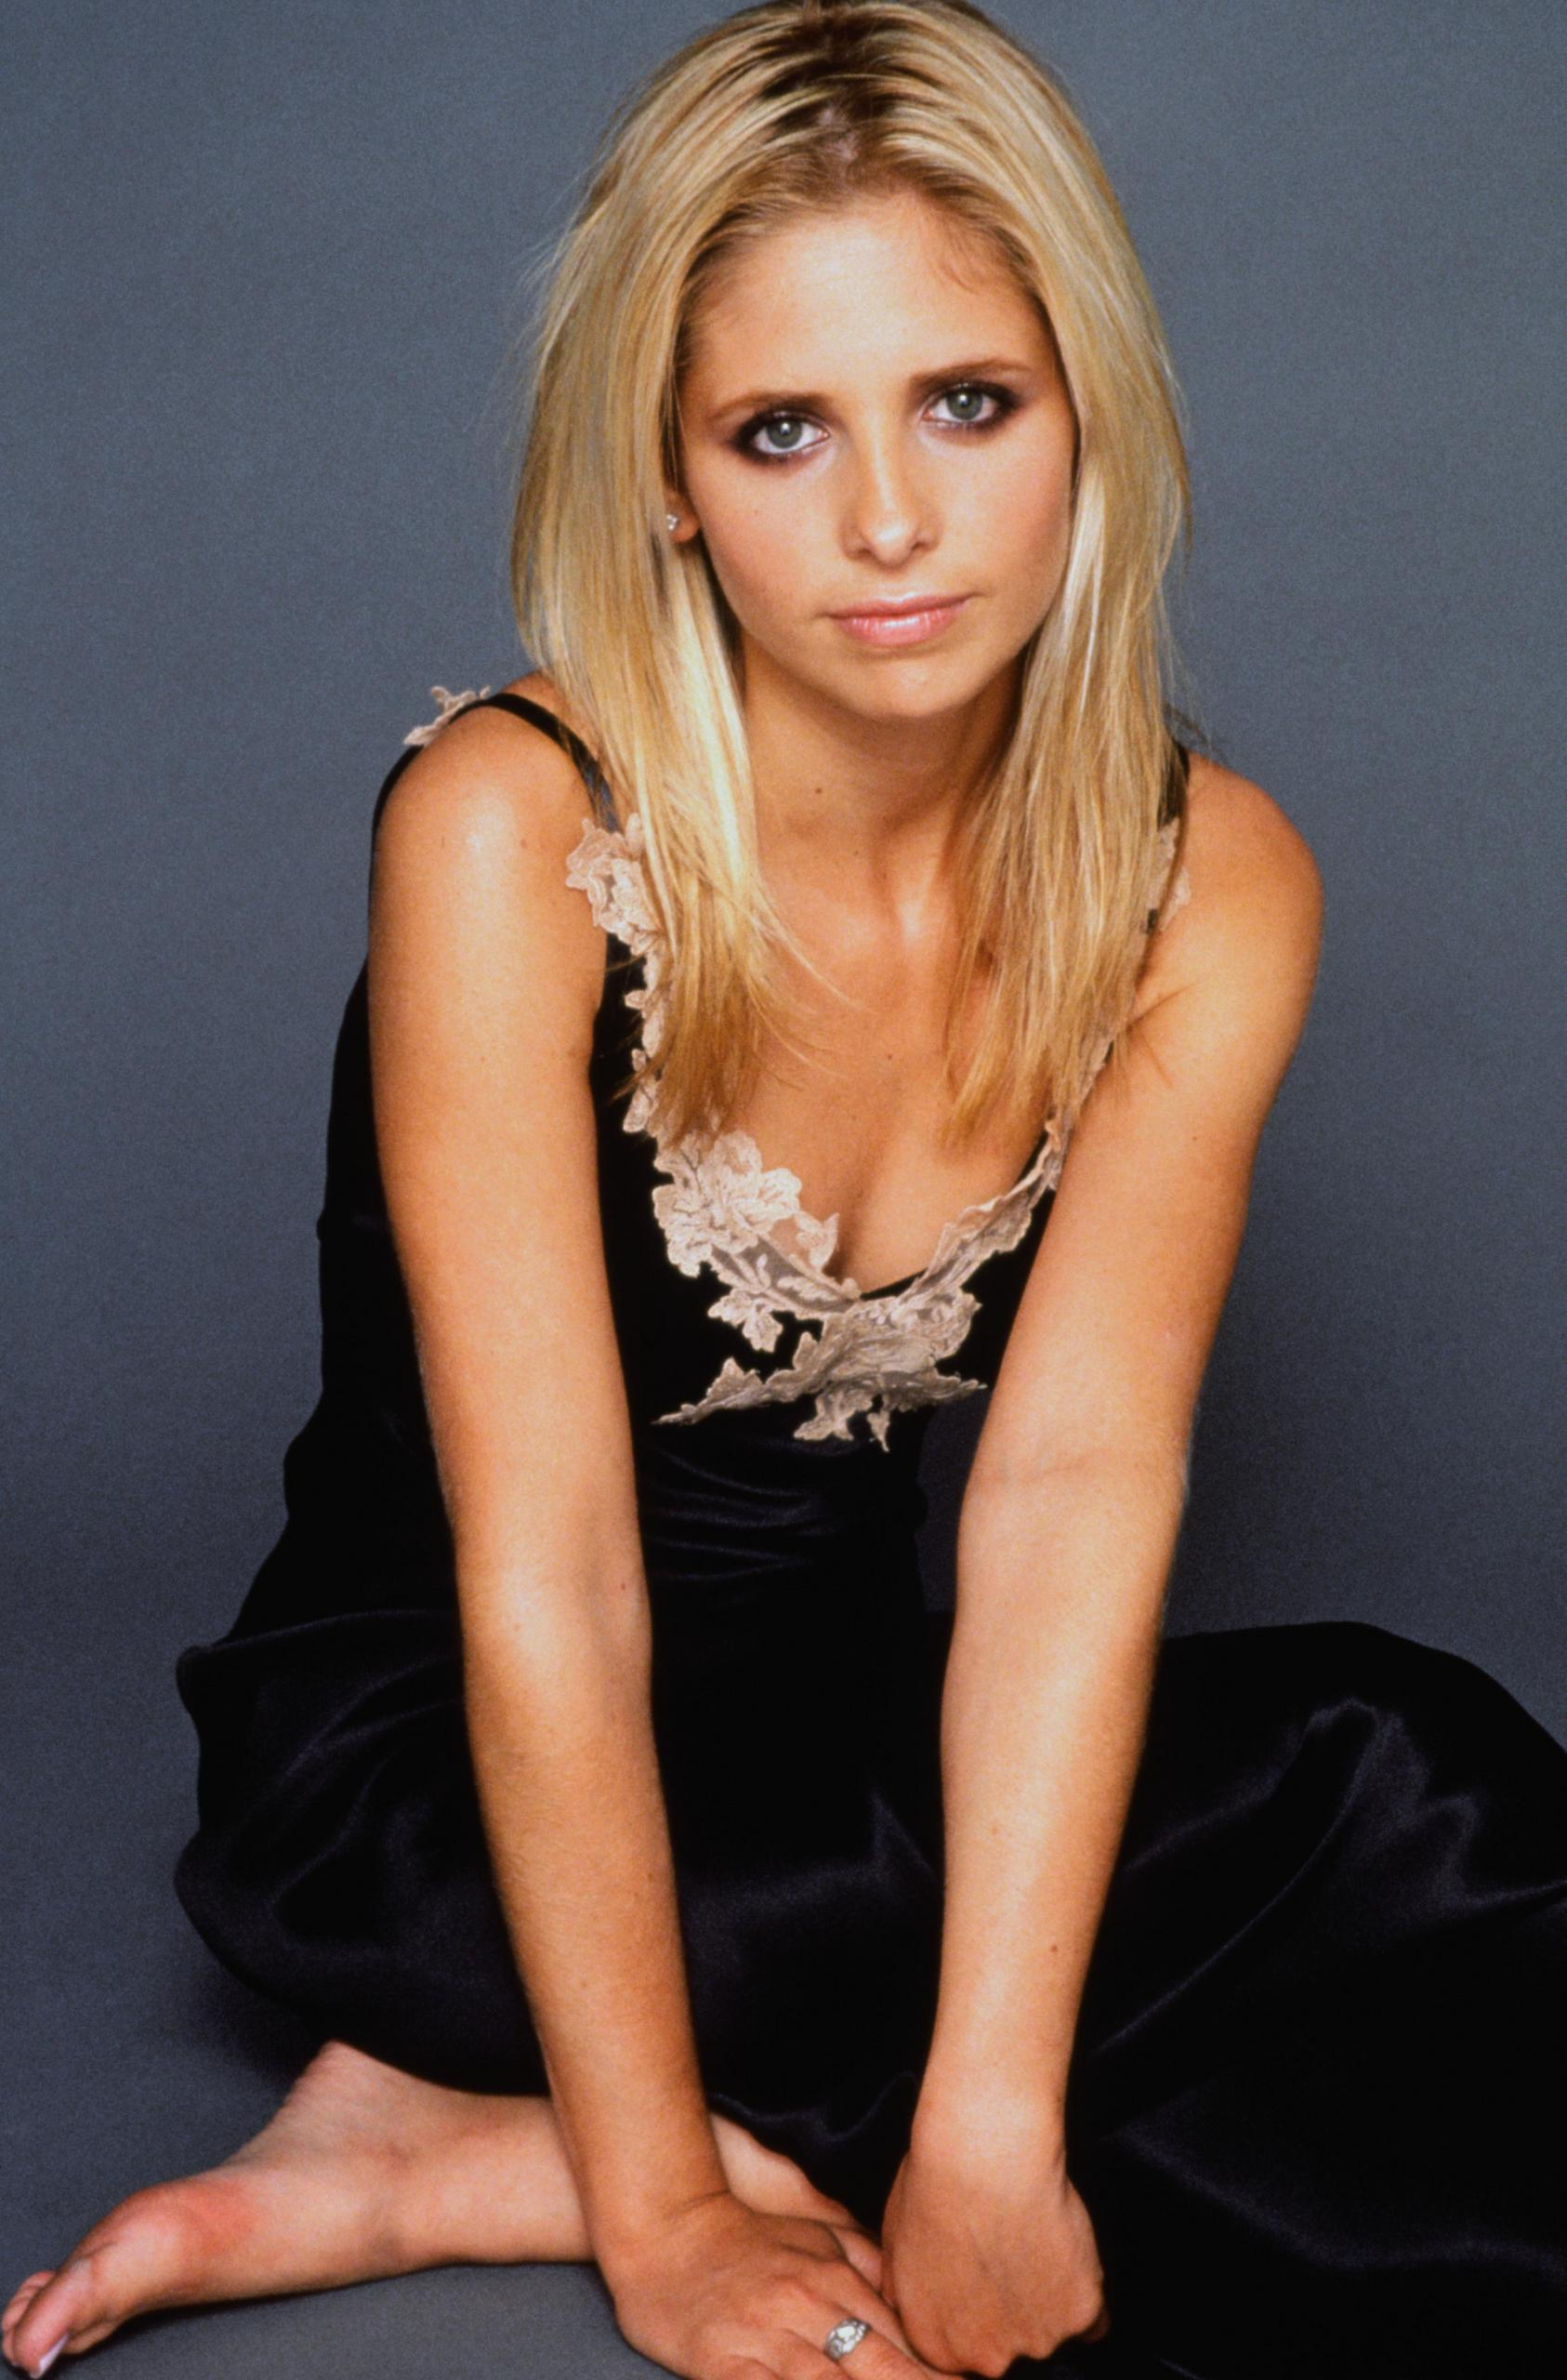 10 Best images about Sarah Michelle Gellar on Pinterest